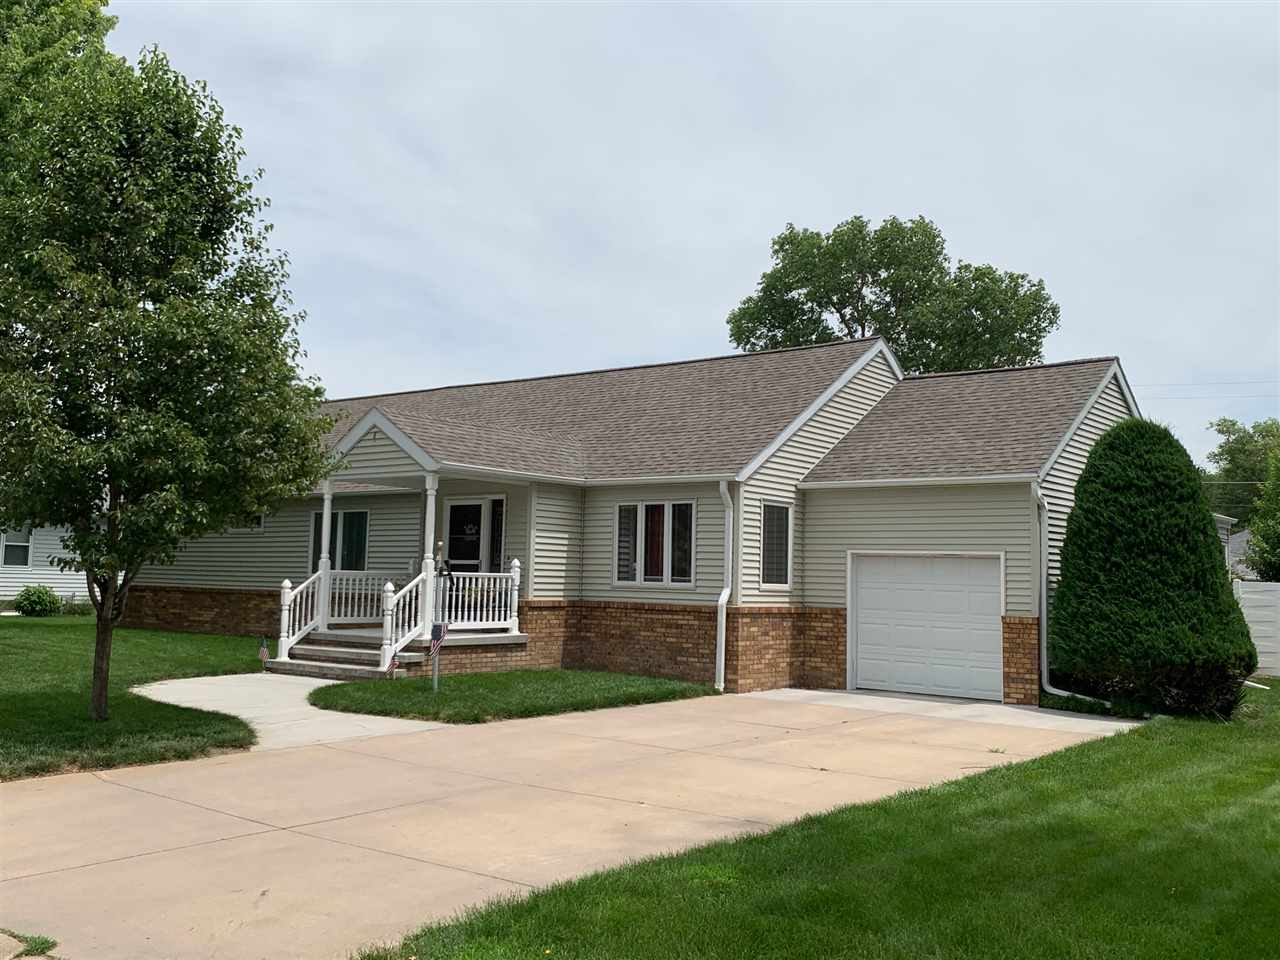 One of Hastings 3 Bedroom Homes for Sale at 1226 Academy Ave